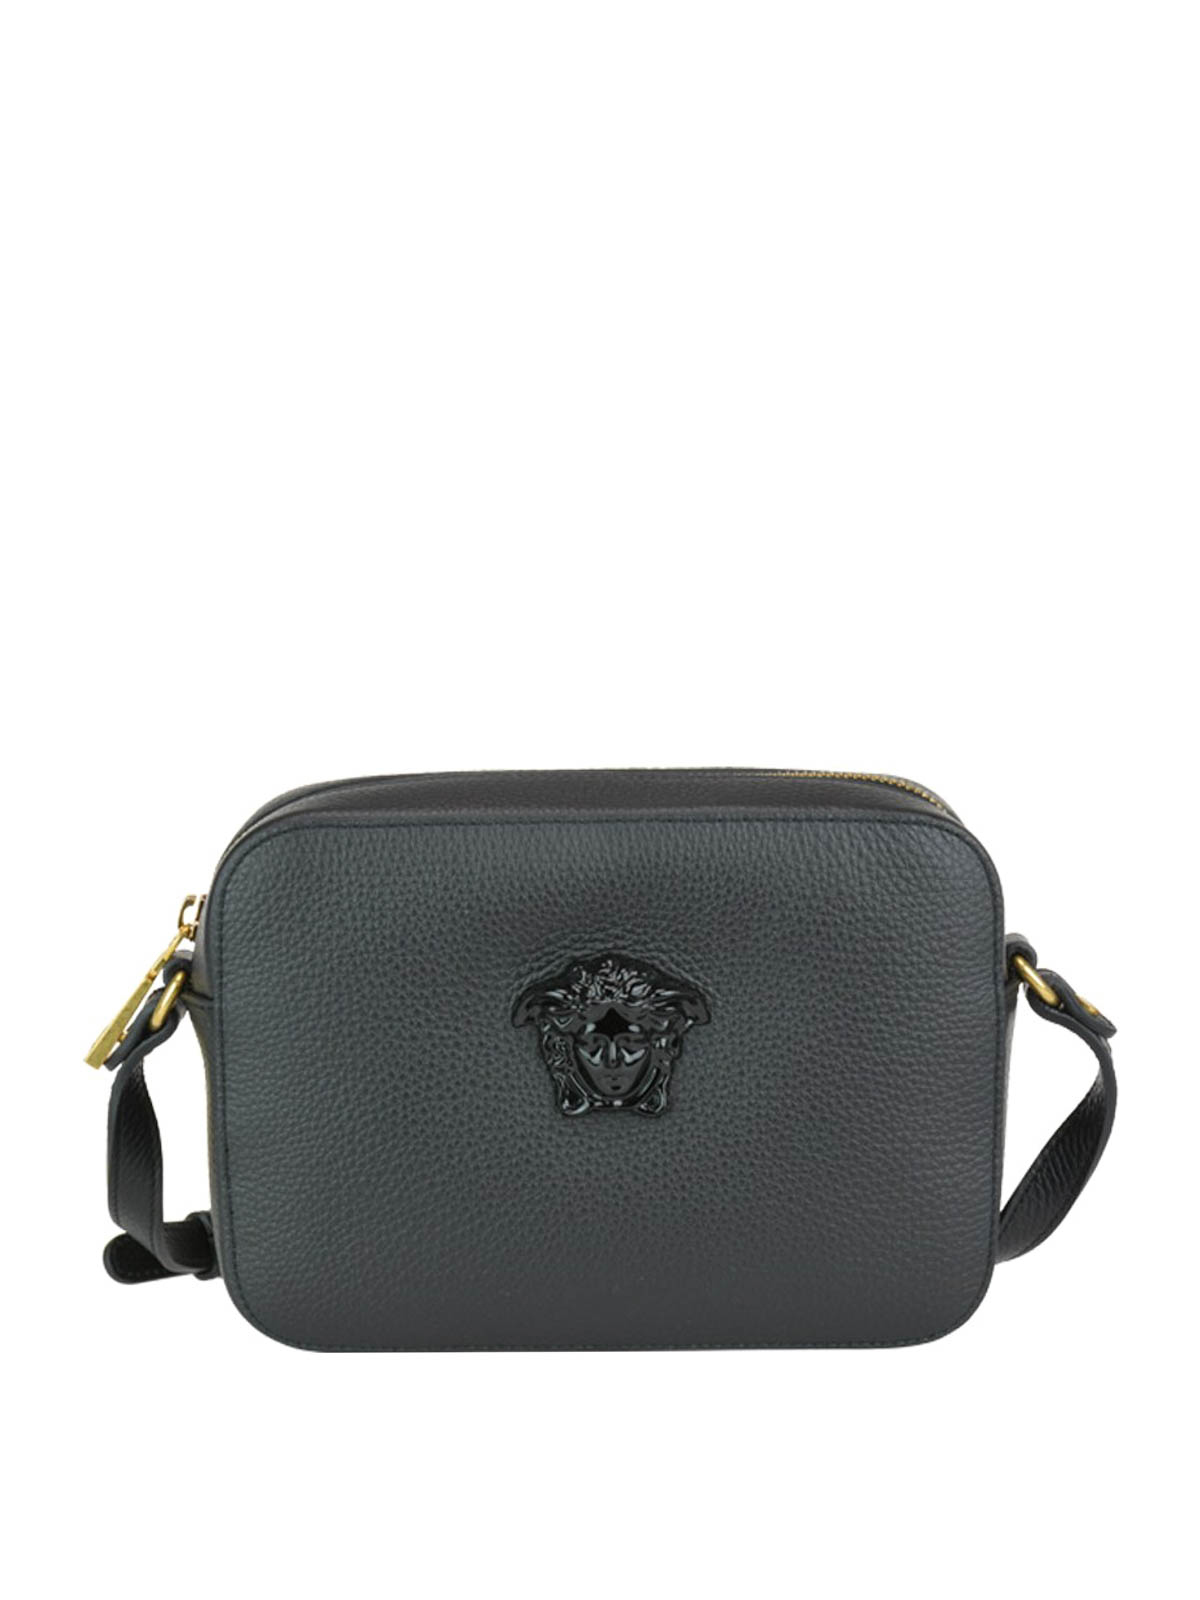 86fefc84e8 VERSACE: cross body bags - Palazzo black grained leather cross body bag